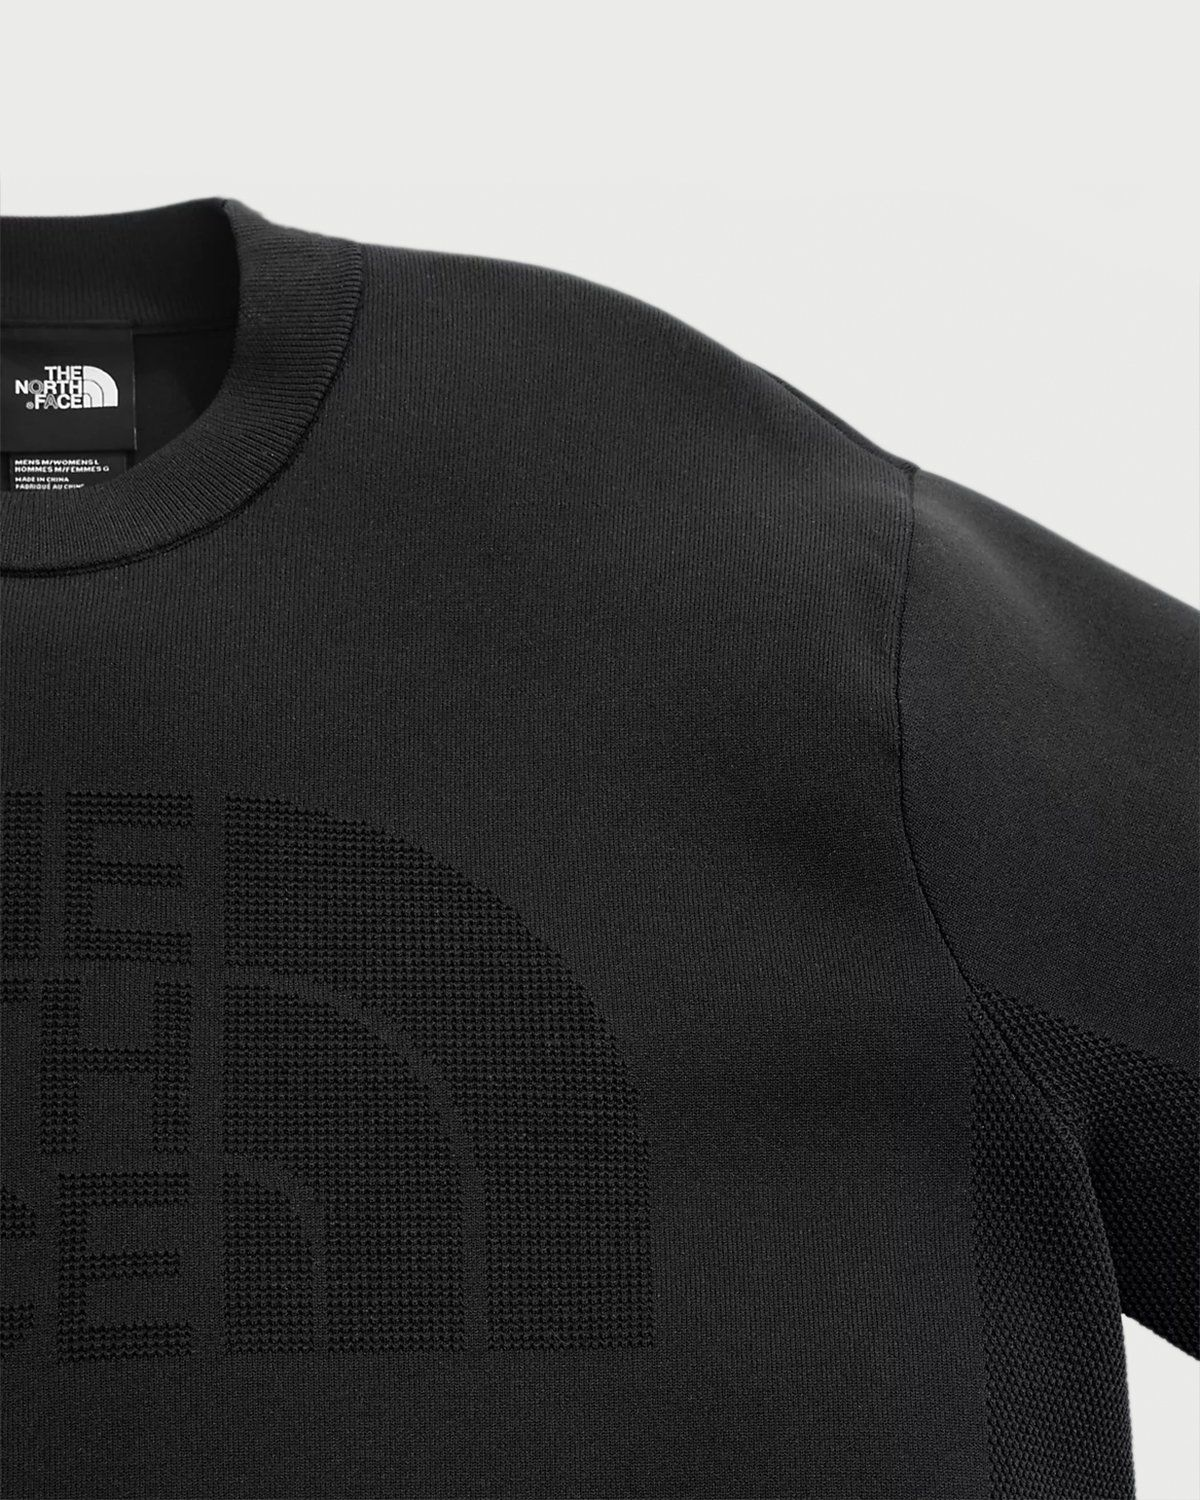 The North Face Black Series - Engineered Knit T-Shirt Black - Image 2